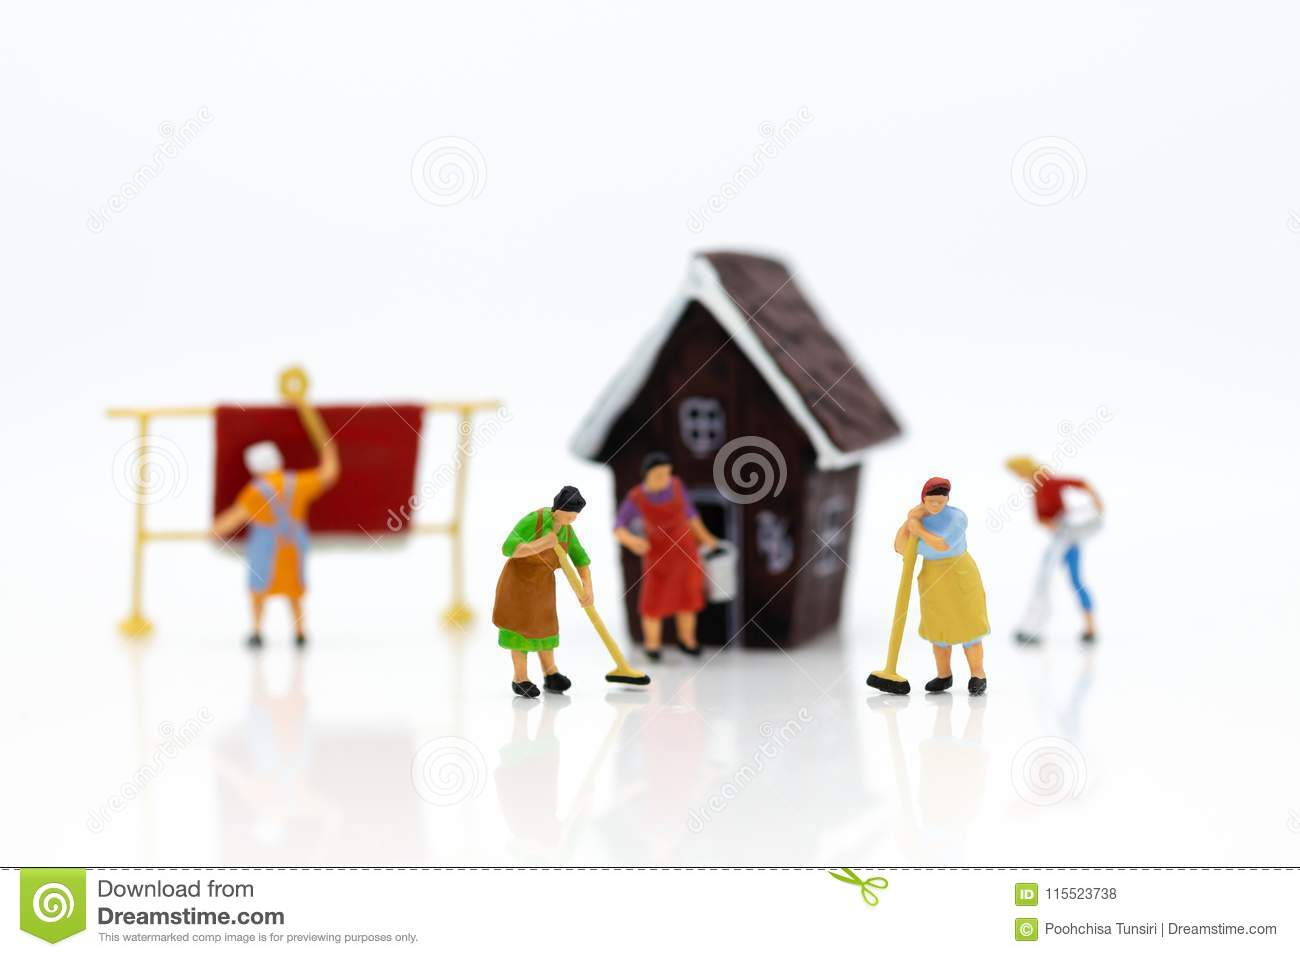 Miniature people: Housekeepers clean the house. Image use for cleaning occupations, business concept